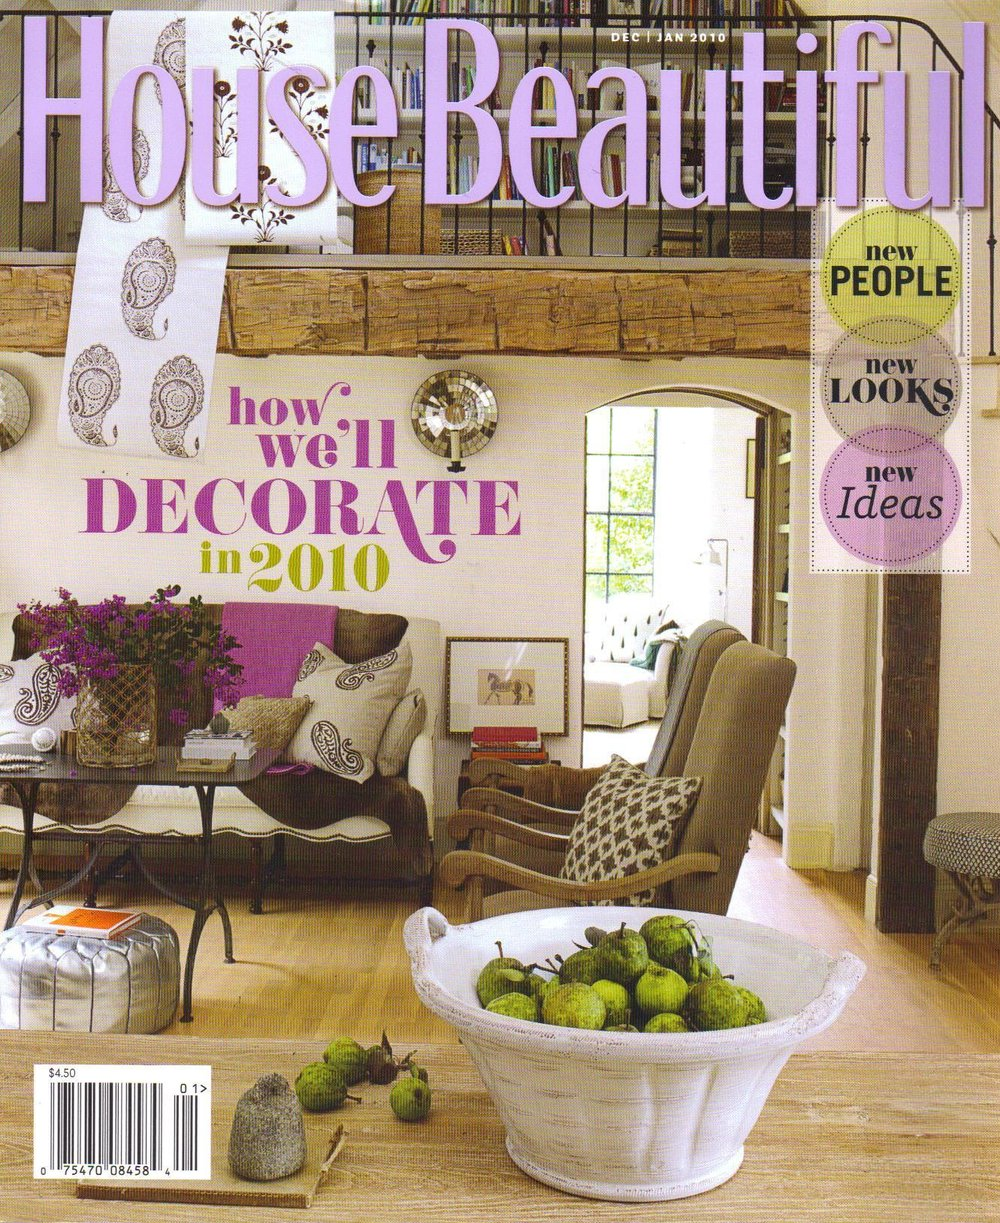 House Beautiful / January 2010